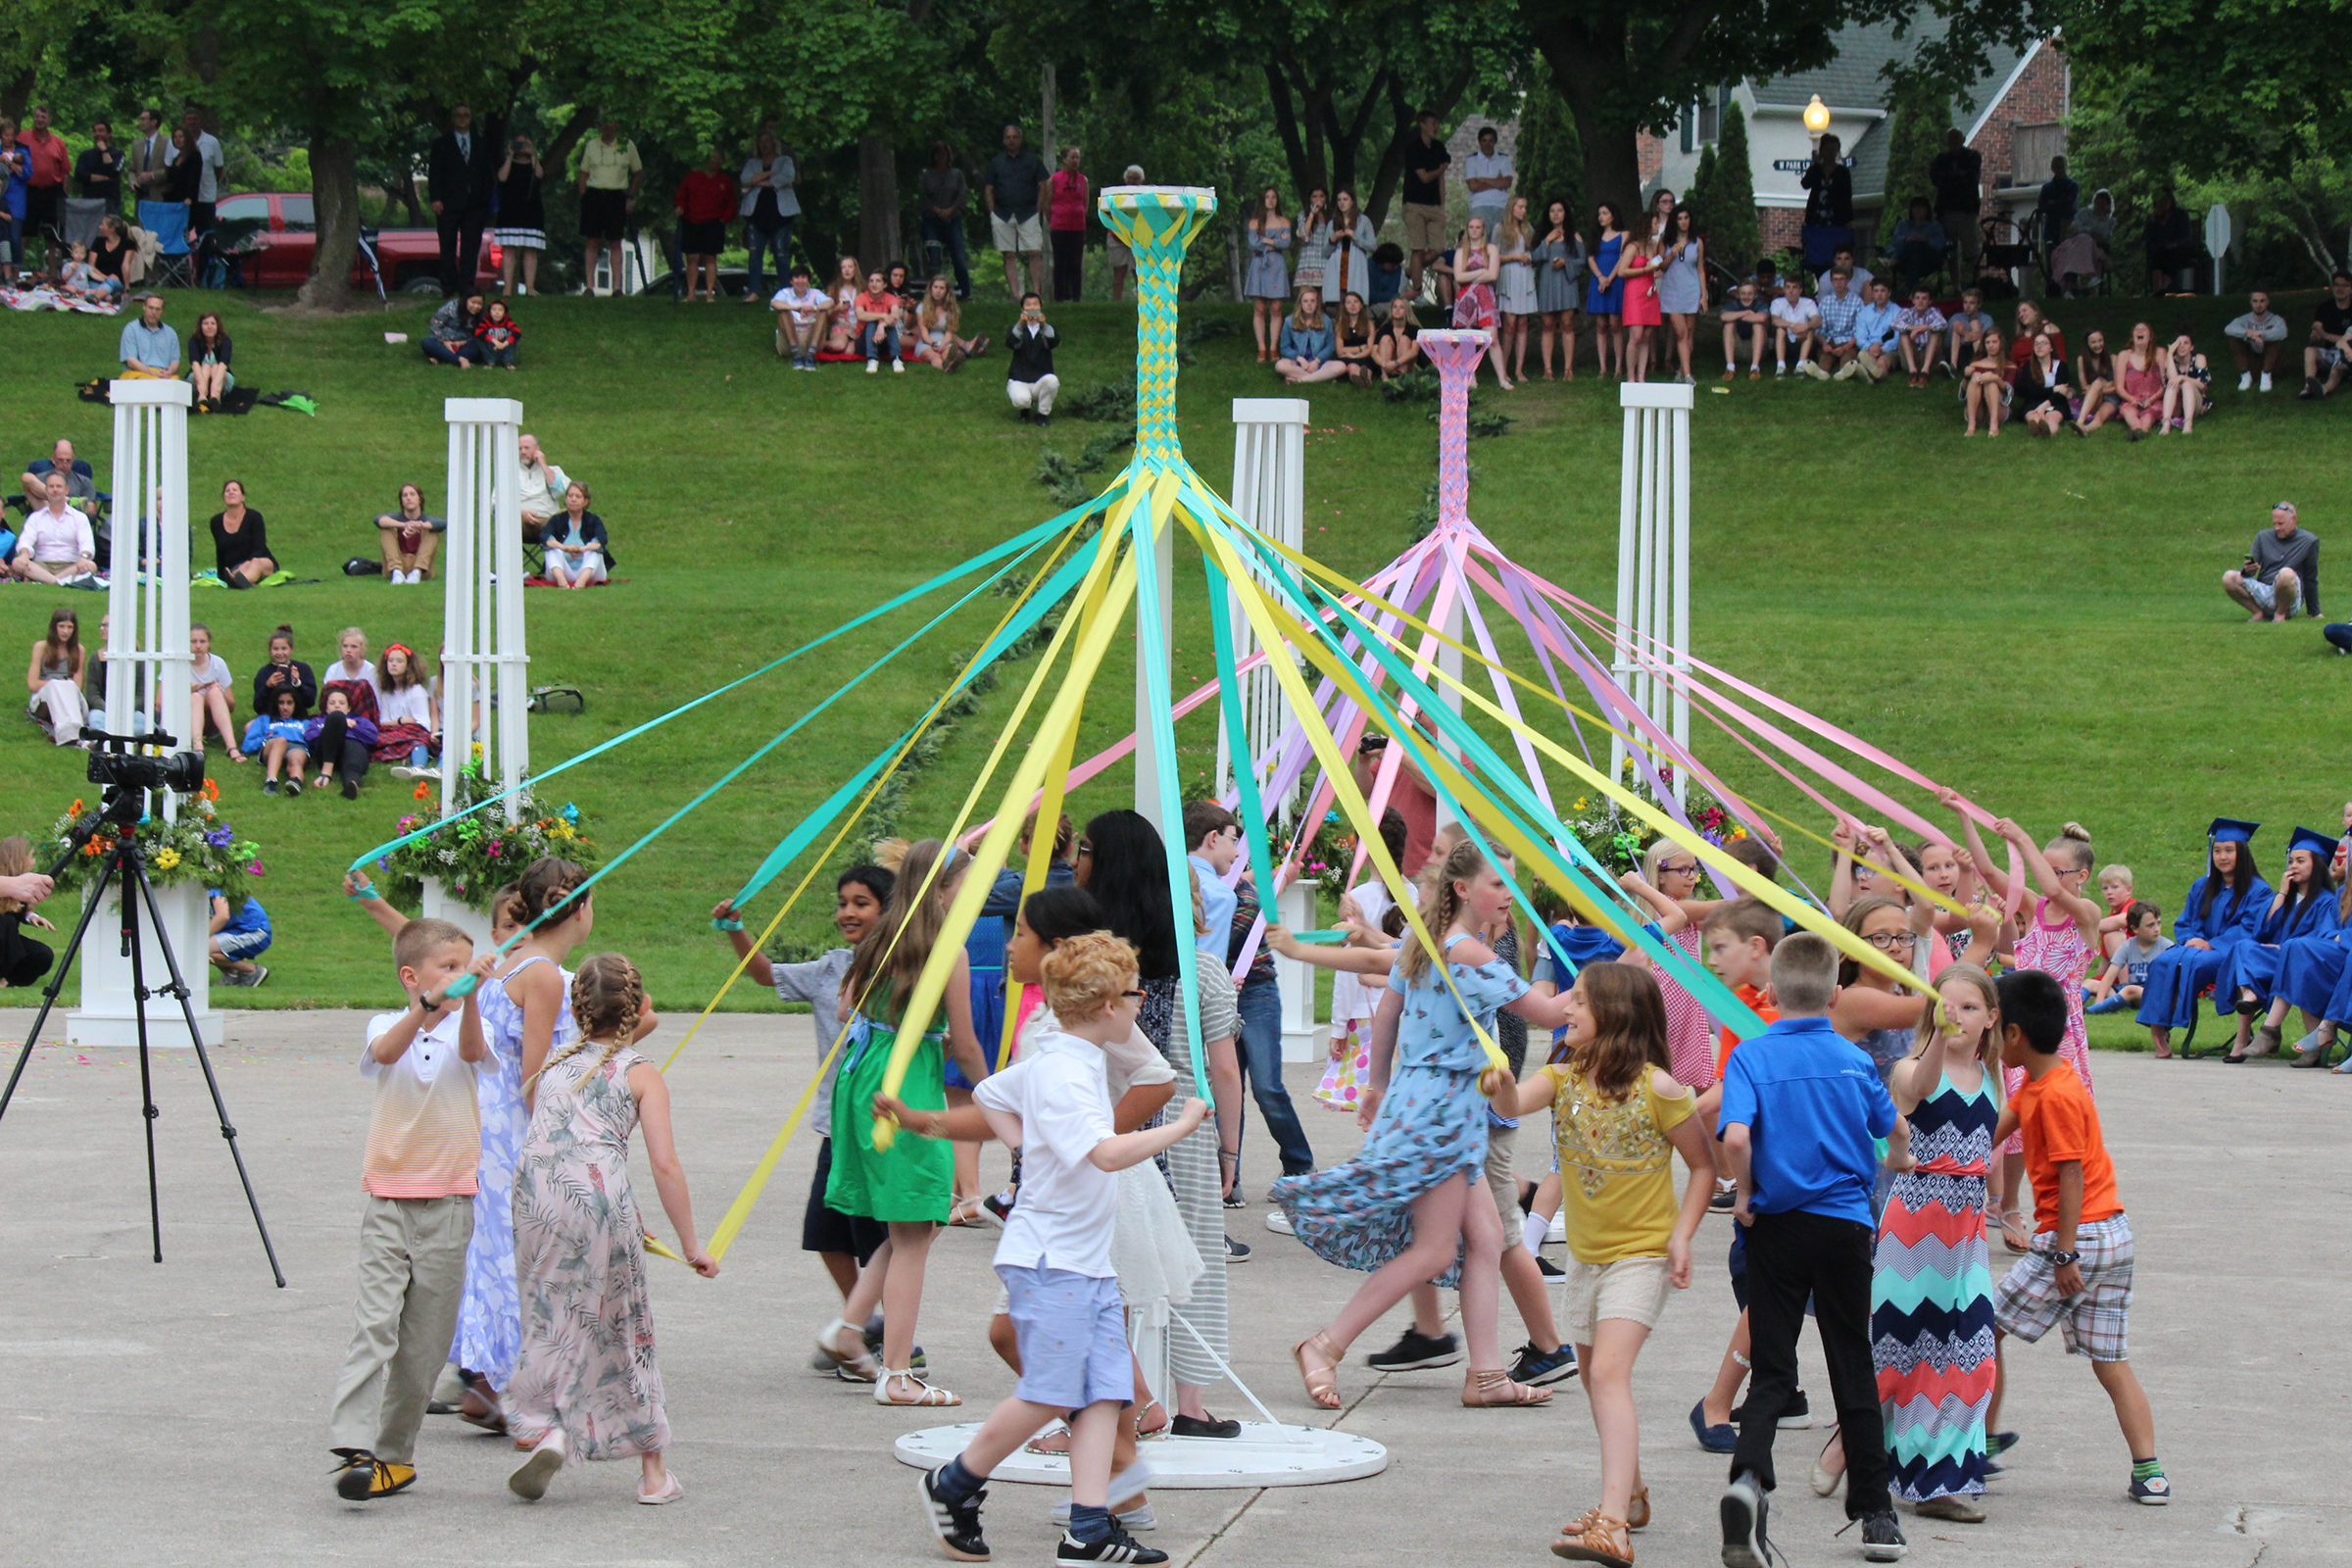 Elementary school students dance around a maypole in a local park during Kohler's high school graduation ceremony—a tradition that also includes a procession through the village and a group dinner.